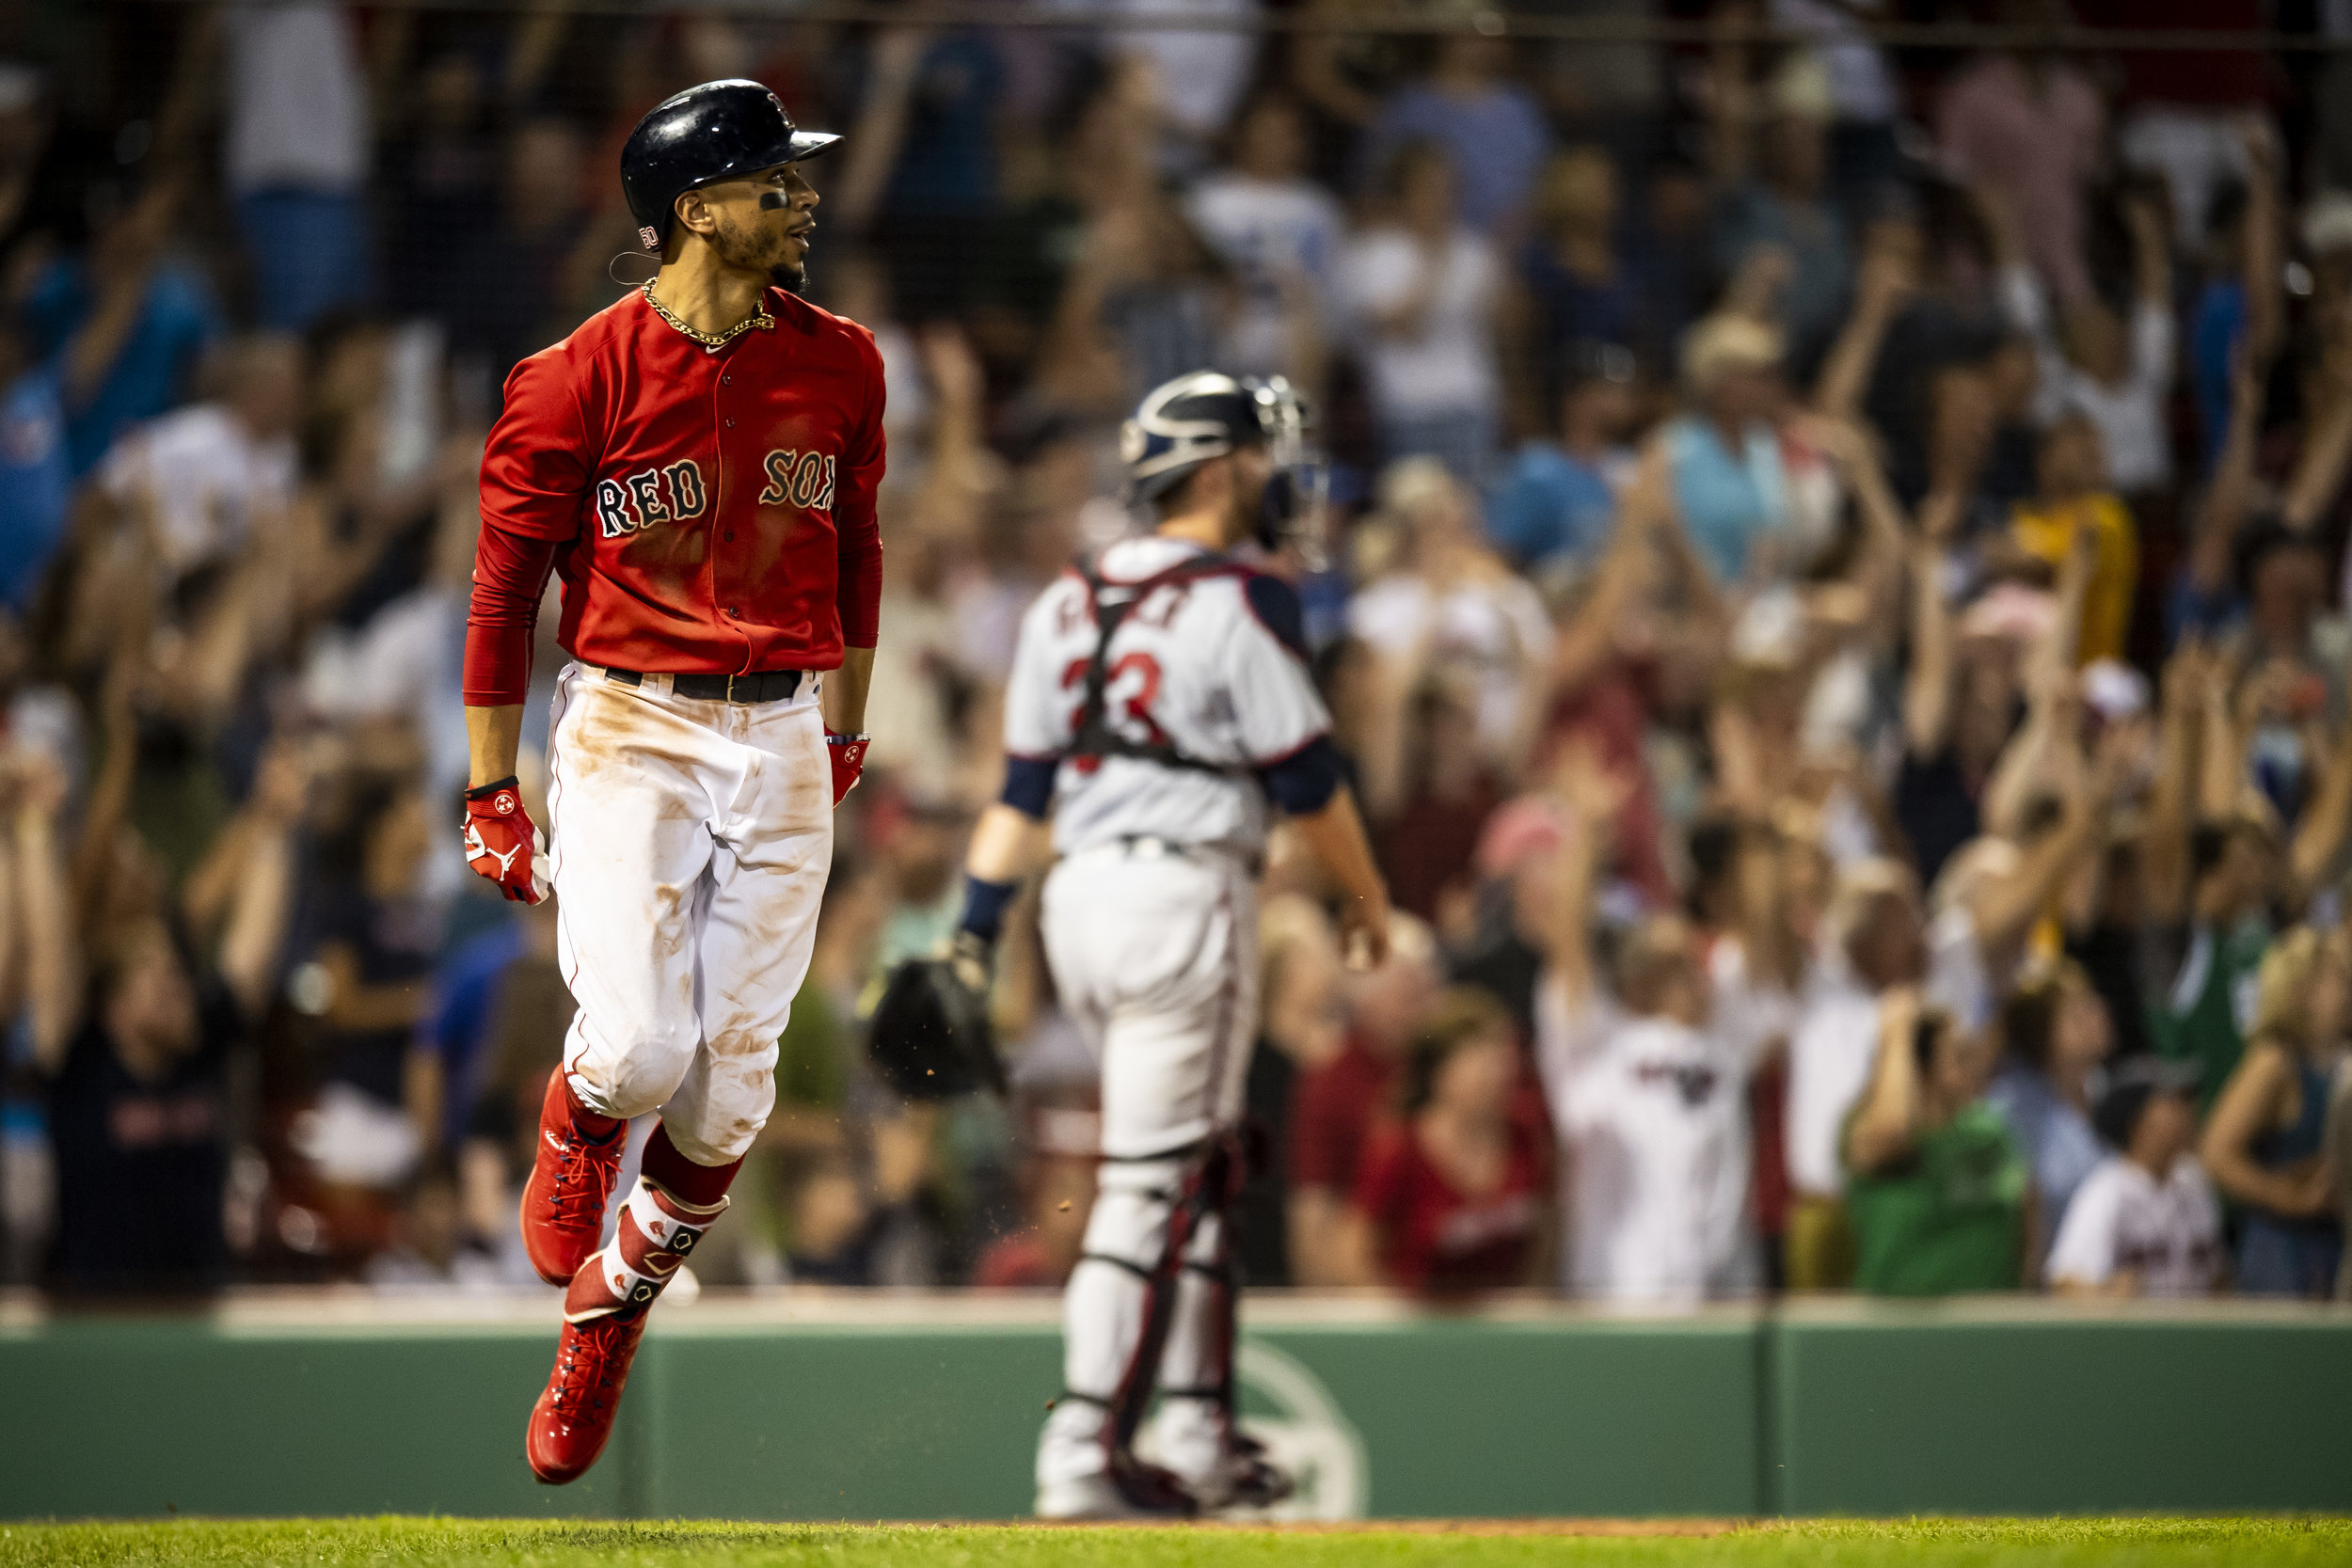 July 26, 2018, Boston, MA: Boston Red Sox outfielder Mookie Betts hits the walk-off home run as the Boston Red Sox defeated the Minnesota Twins at Fenway Park in Boston, Massachusetts on Friday, July 27, 2018. (Photo by Matthew Thomas/Boston Red Sox)